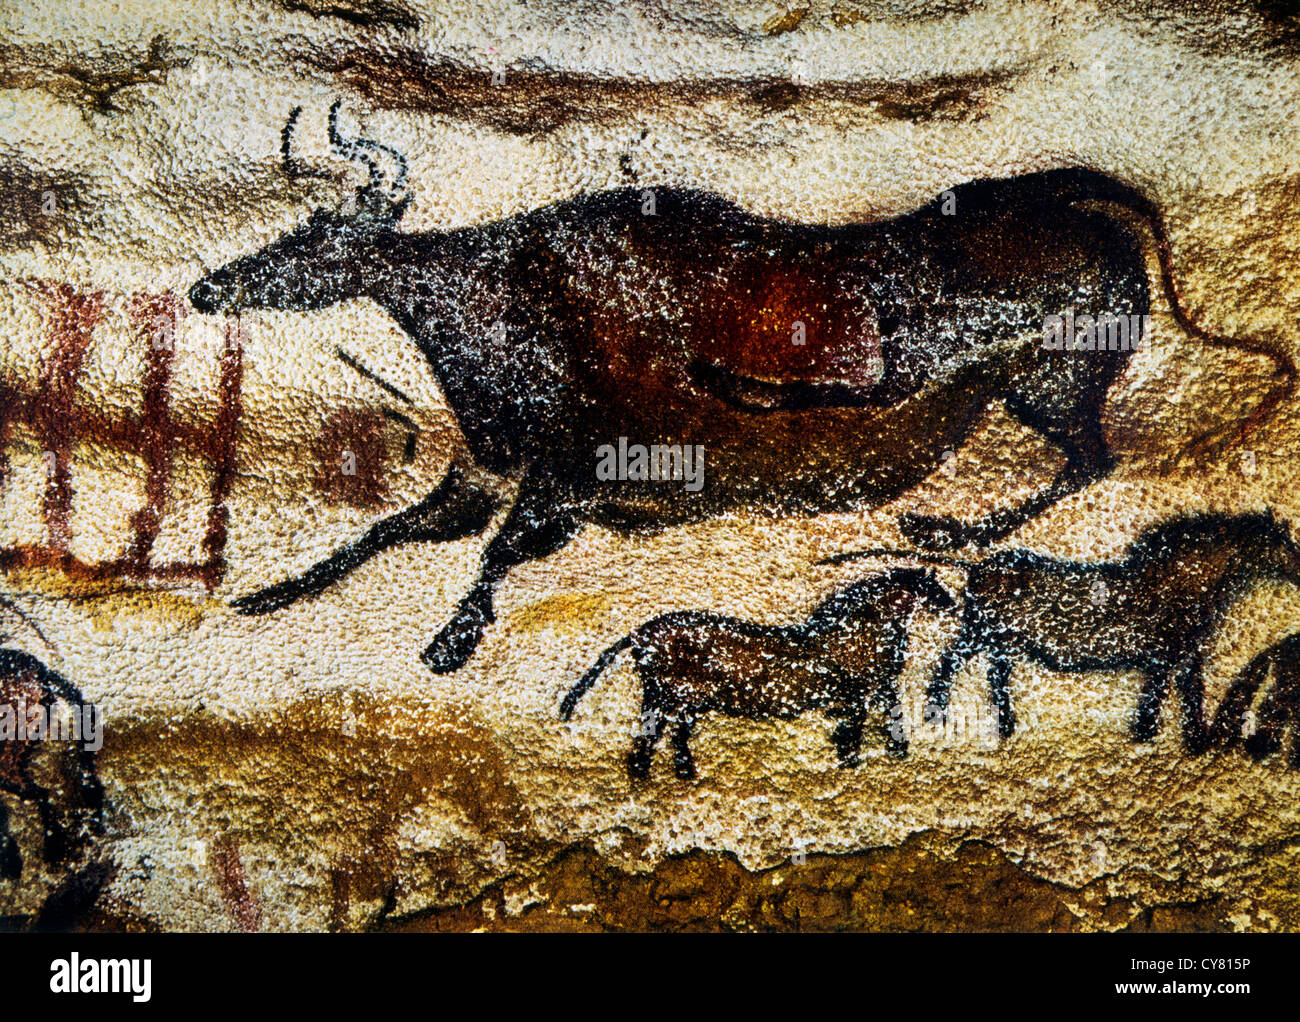 Cave Painting of Cow & Horses, Lascaux, France - Stock Image